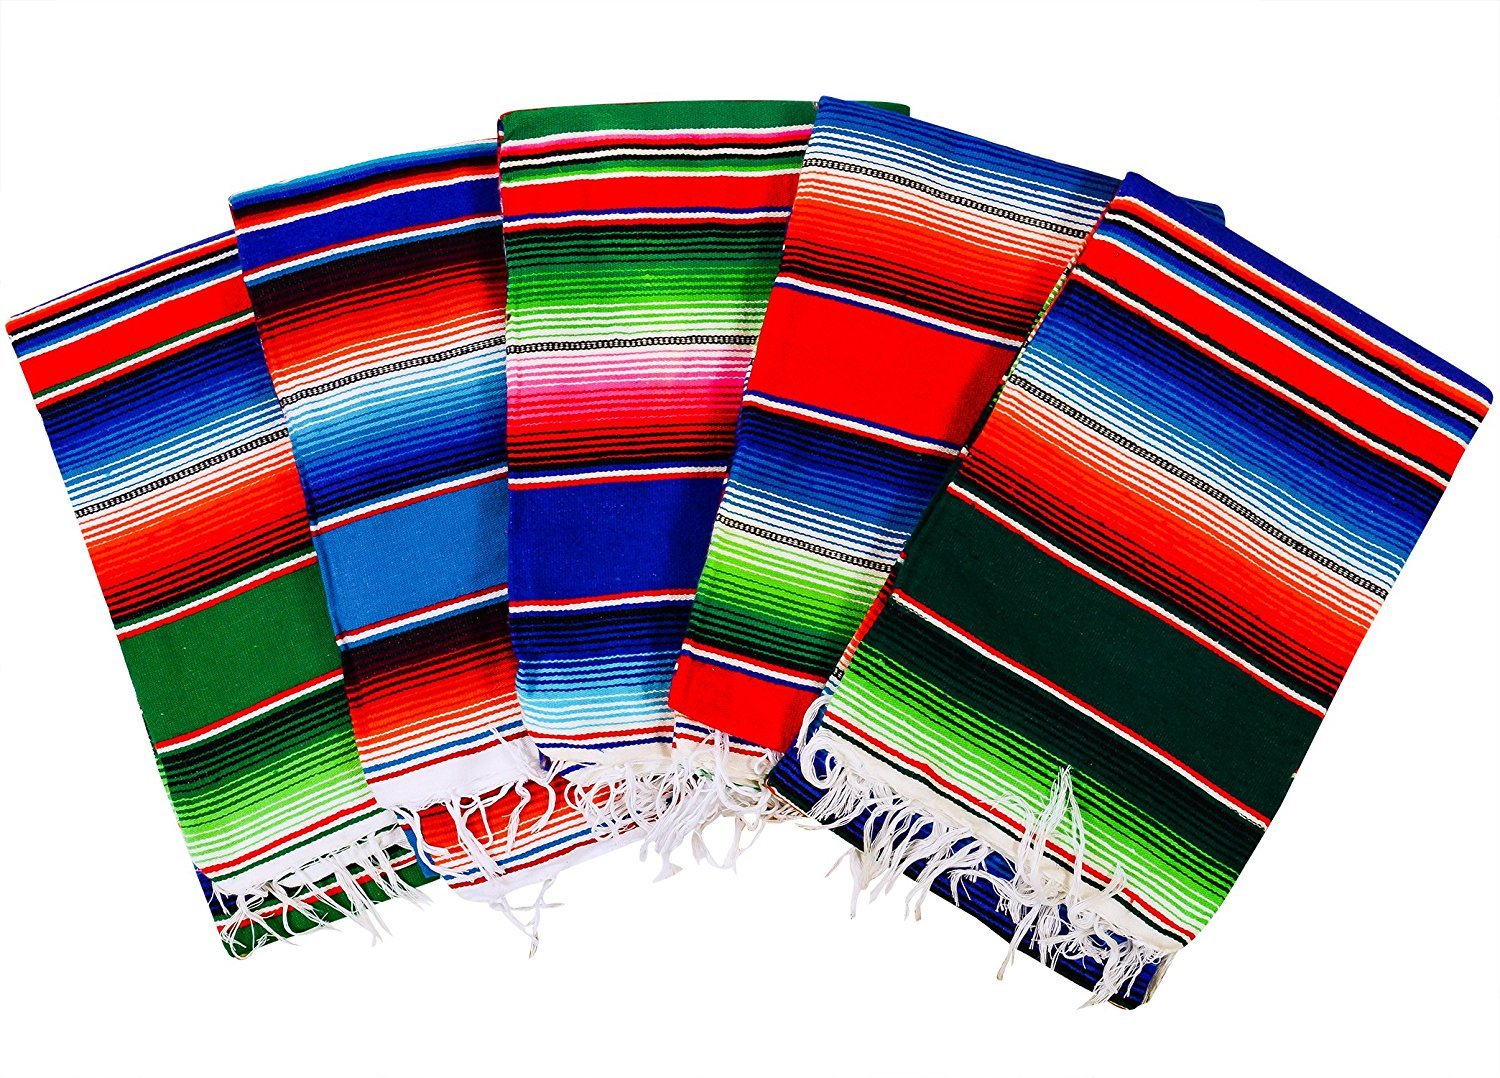 authentic san marcos blankets